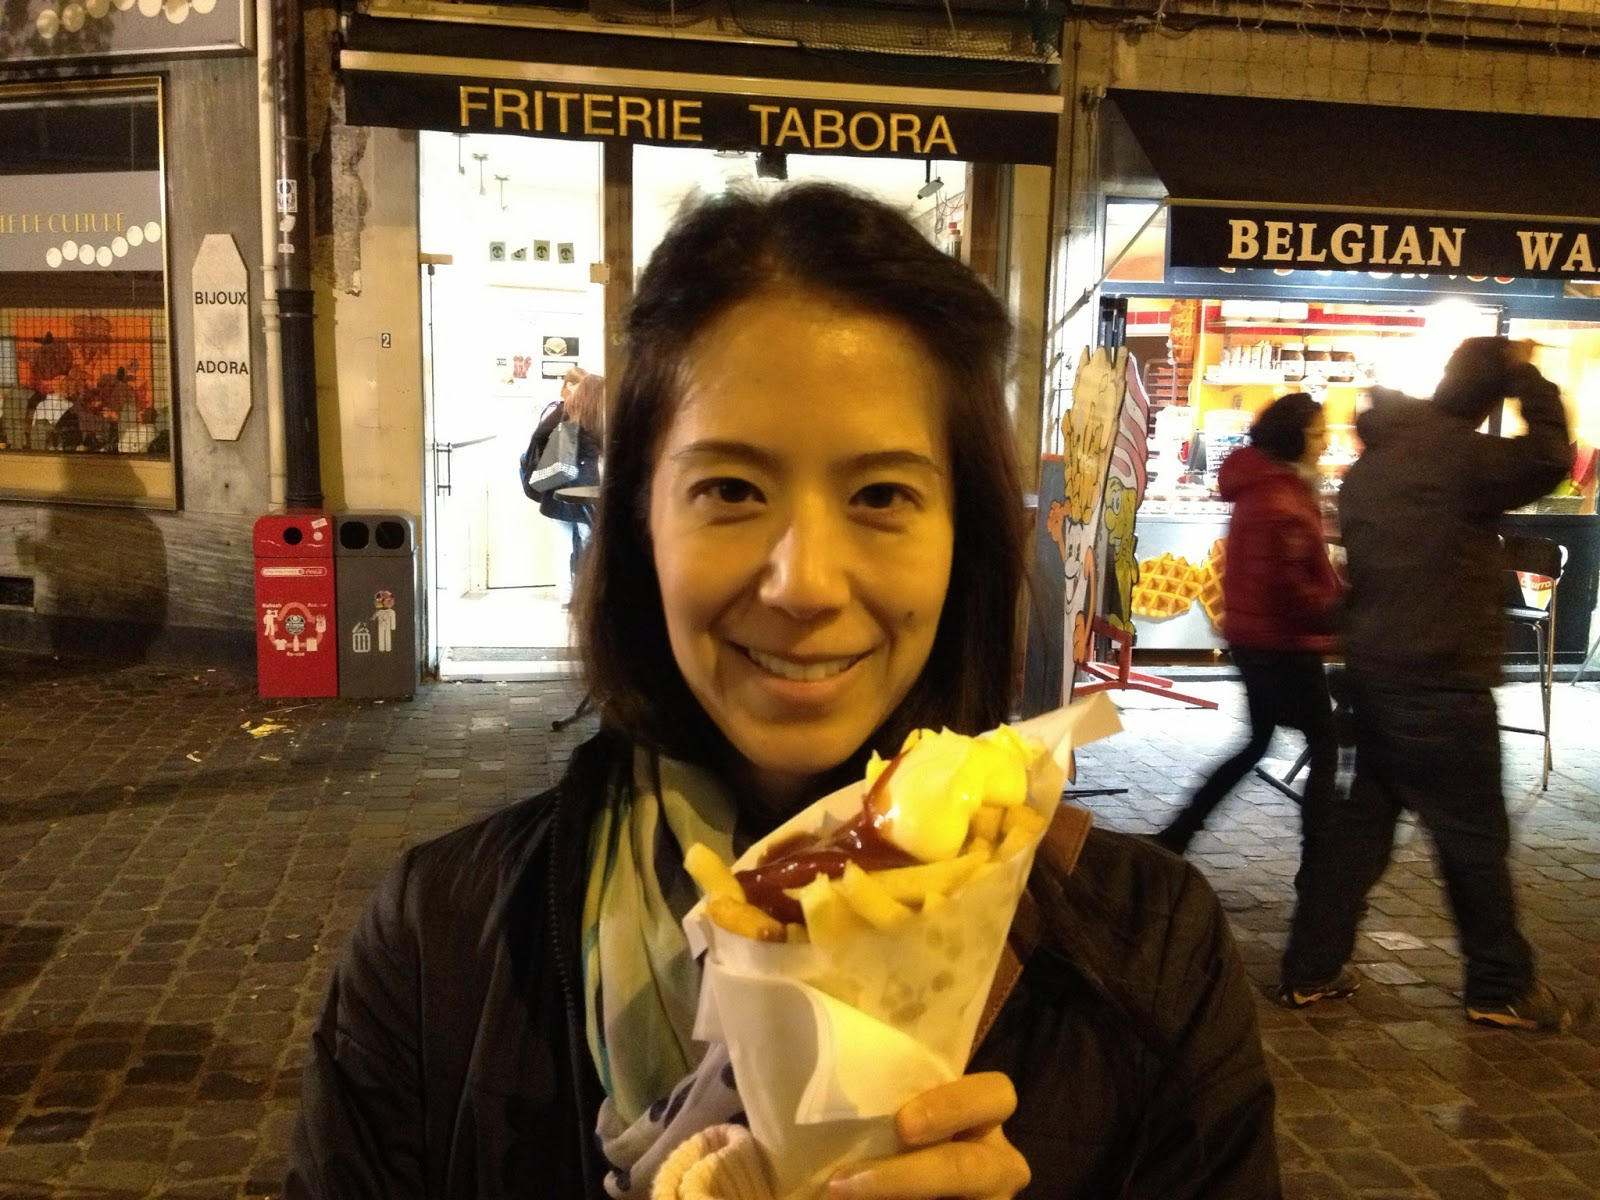 Brussels - Post-dinner snack of frites!